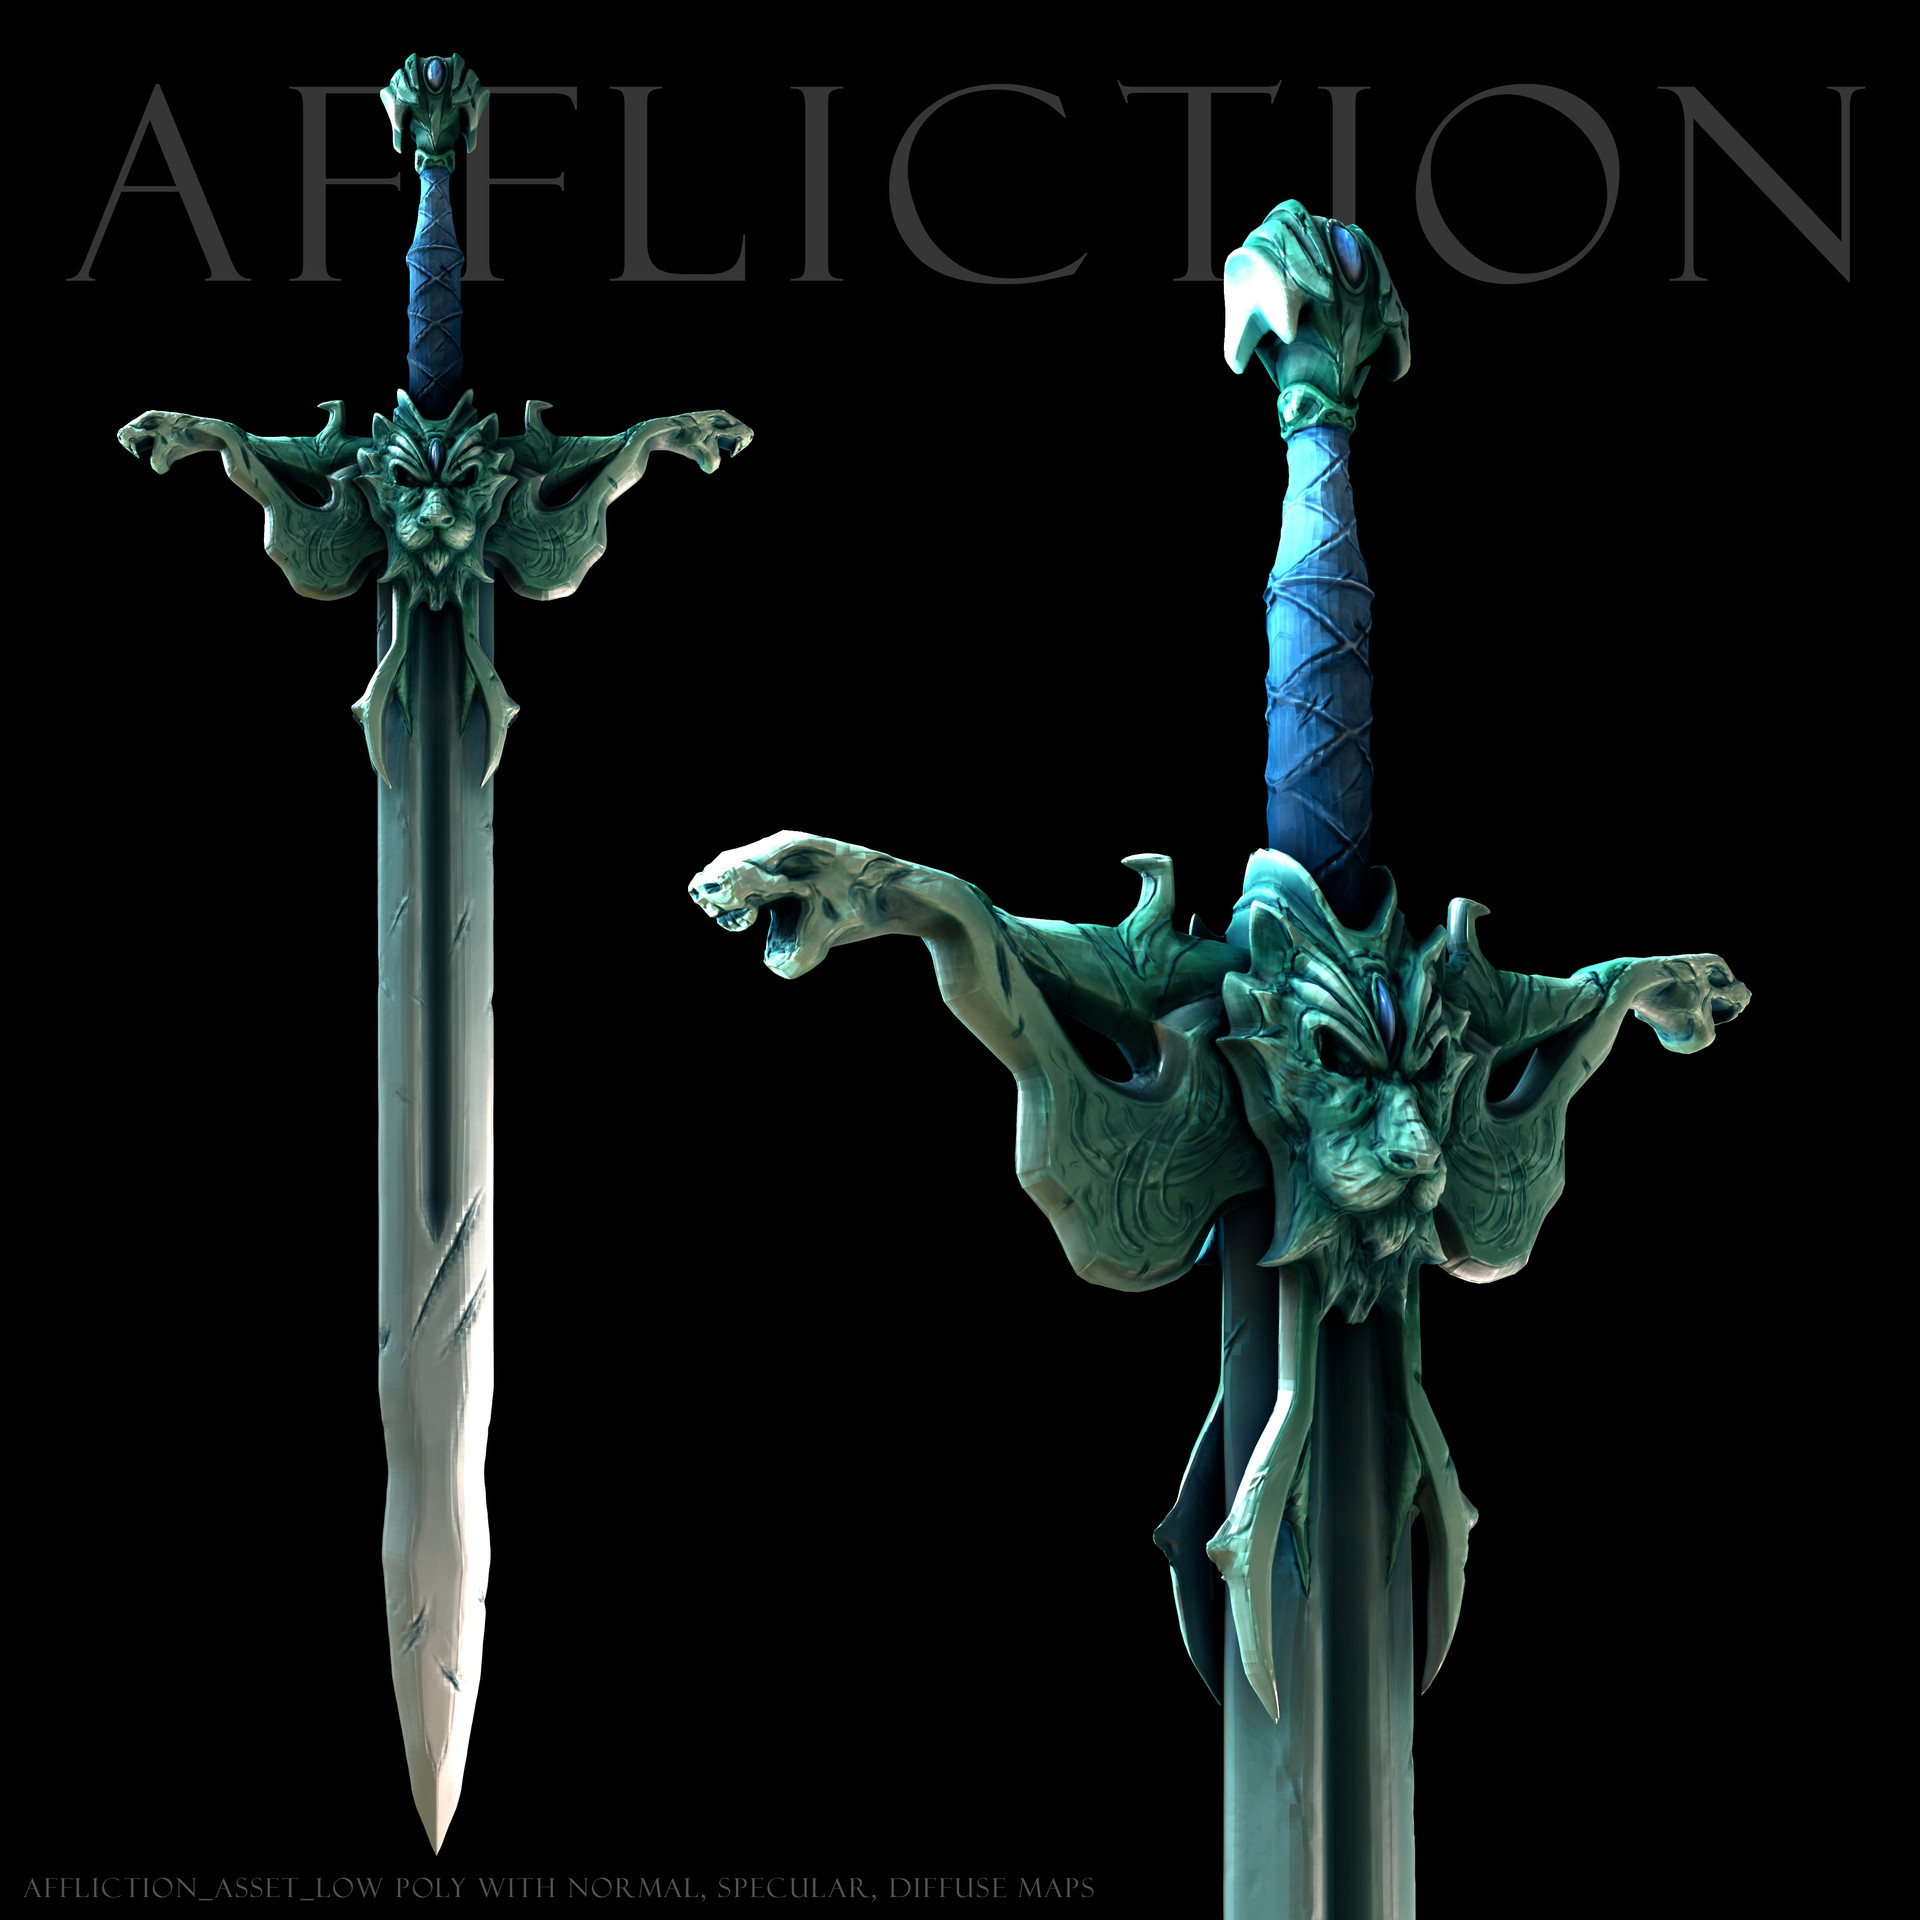 Lil bit o 3D - Affliction Sword from a previous design of mine